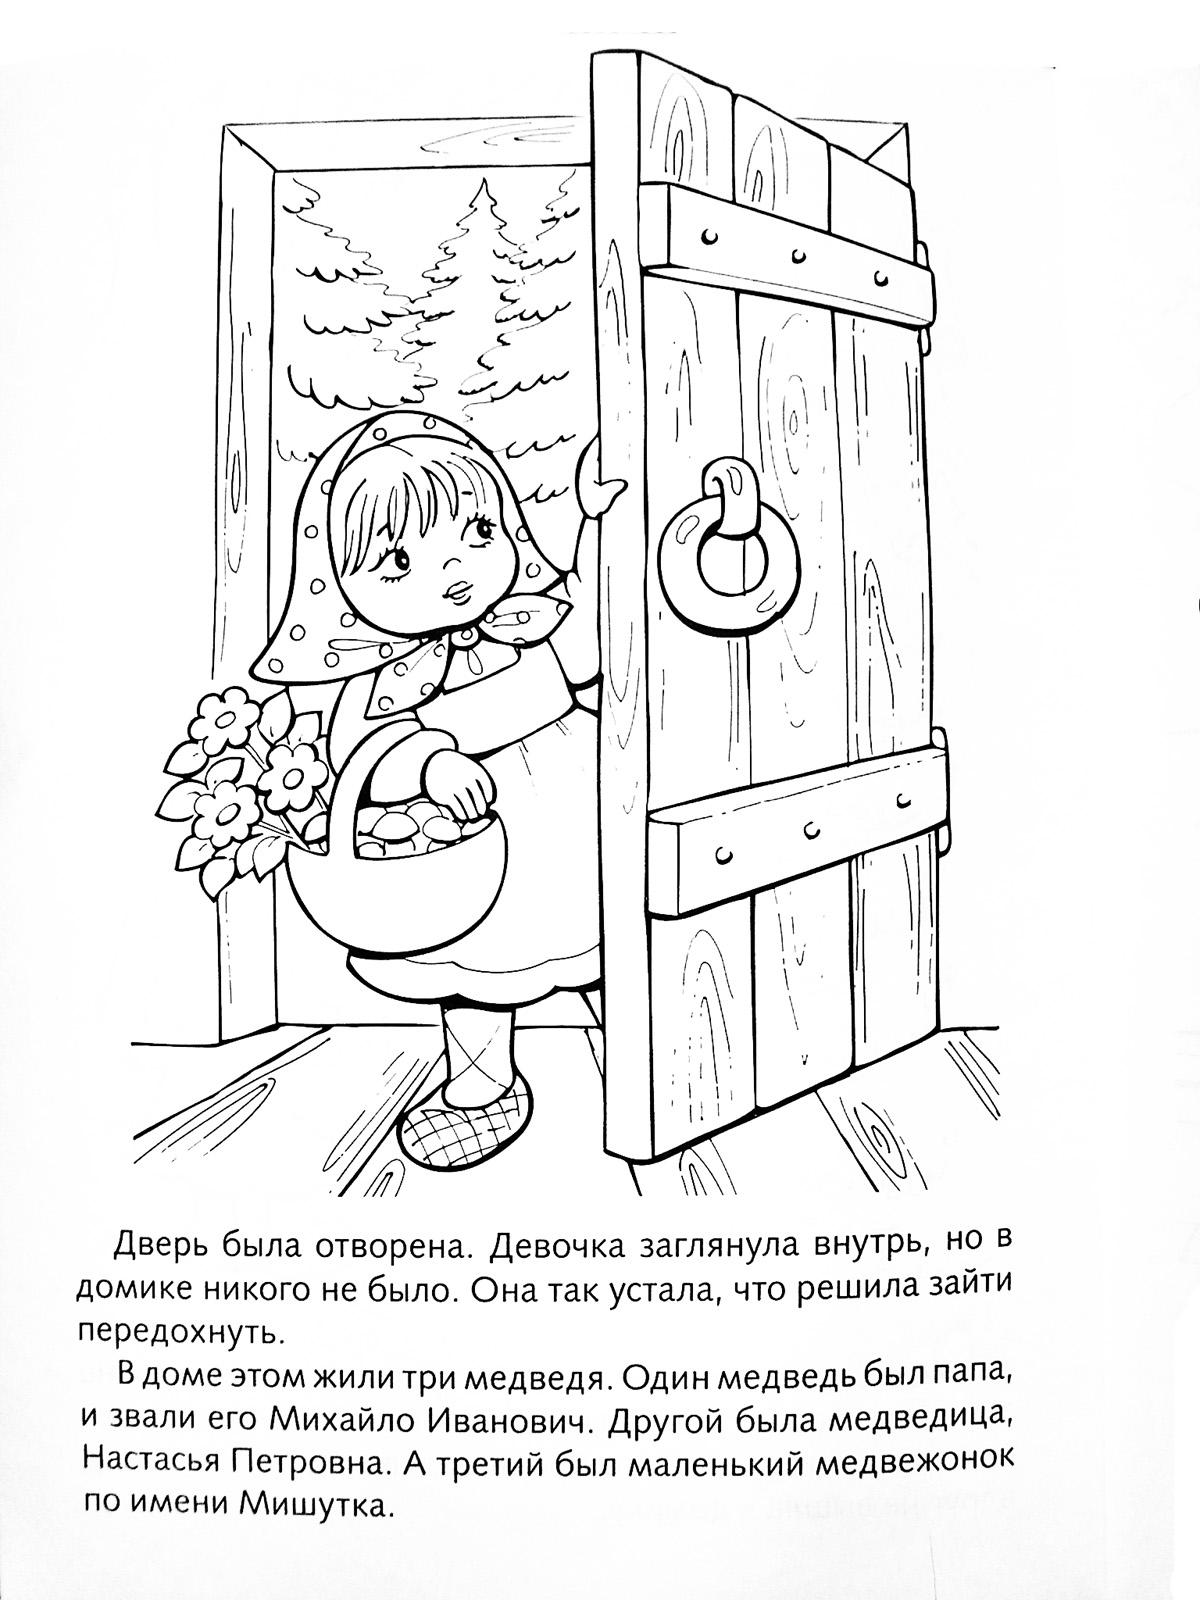 Coloring coloring pages to the tale of three bears Girl opens the door, coloring pages the tale